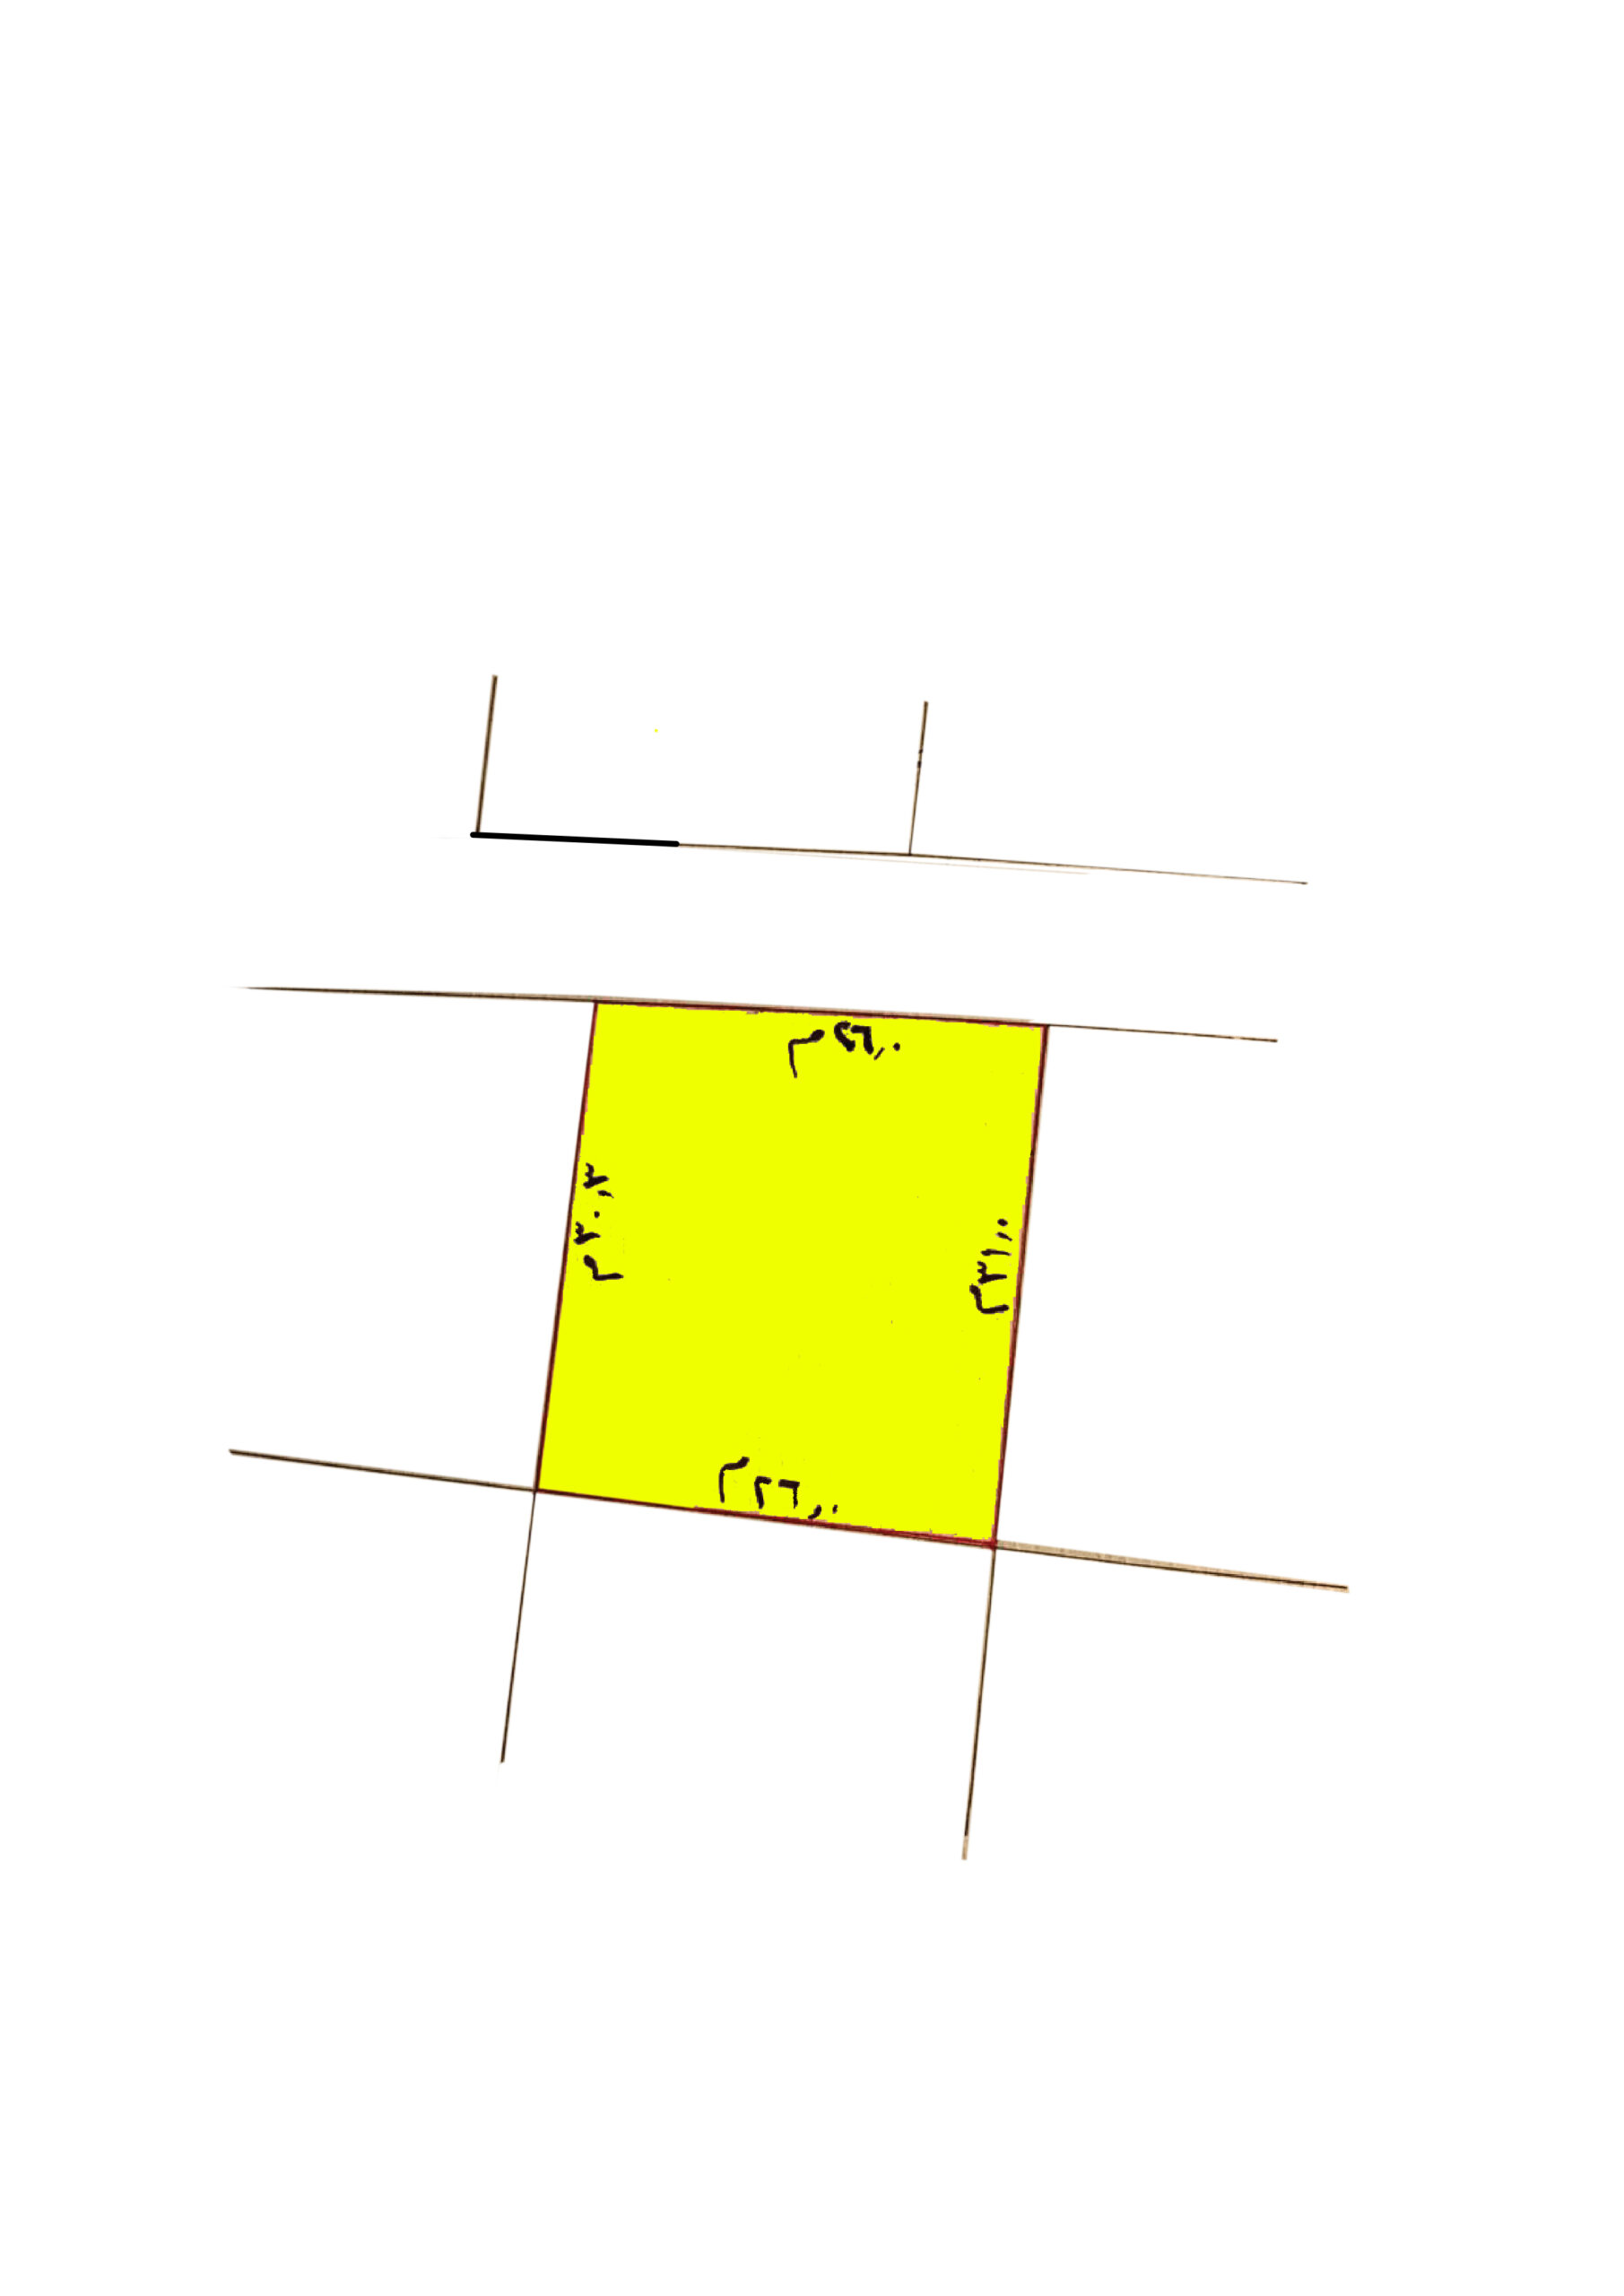 Land for sale RHA located in Aali, land size 796.60 SQM, offered for BD 205,788 /- (Price Negotiable)